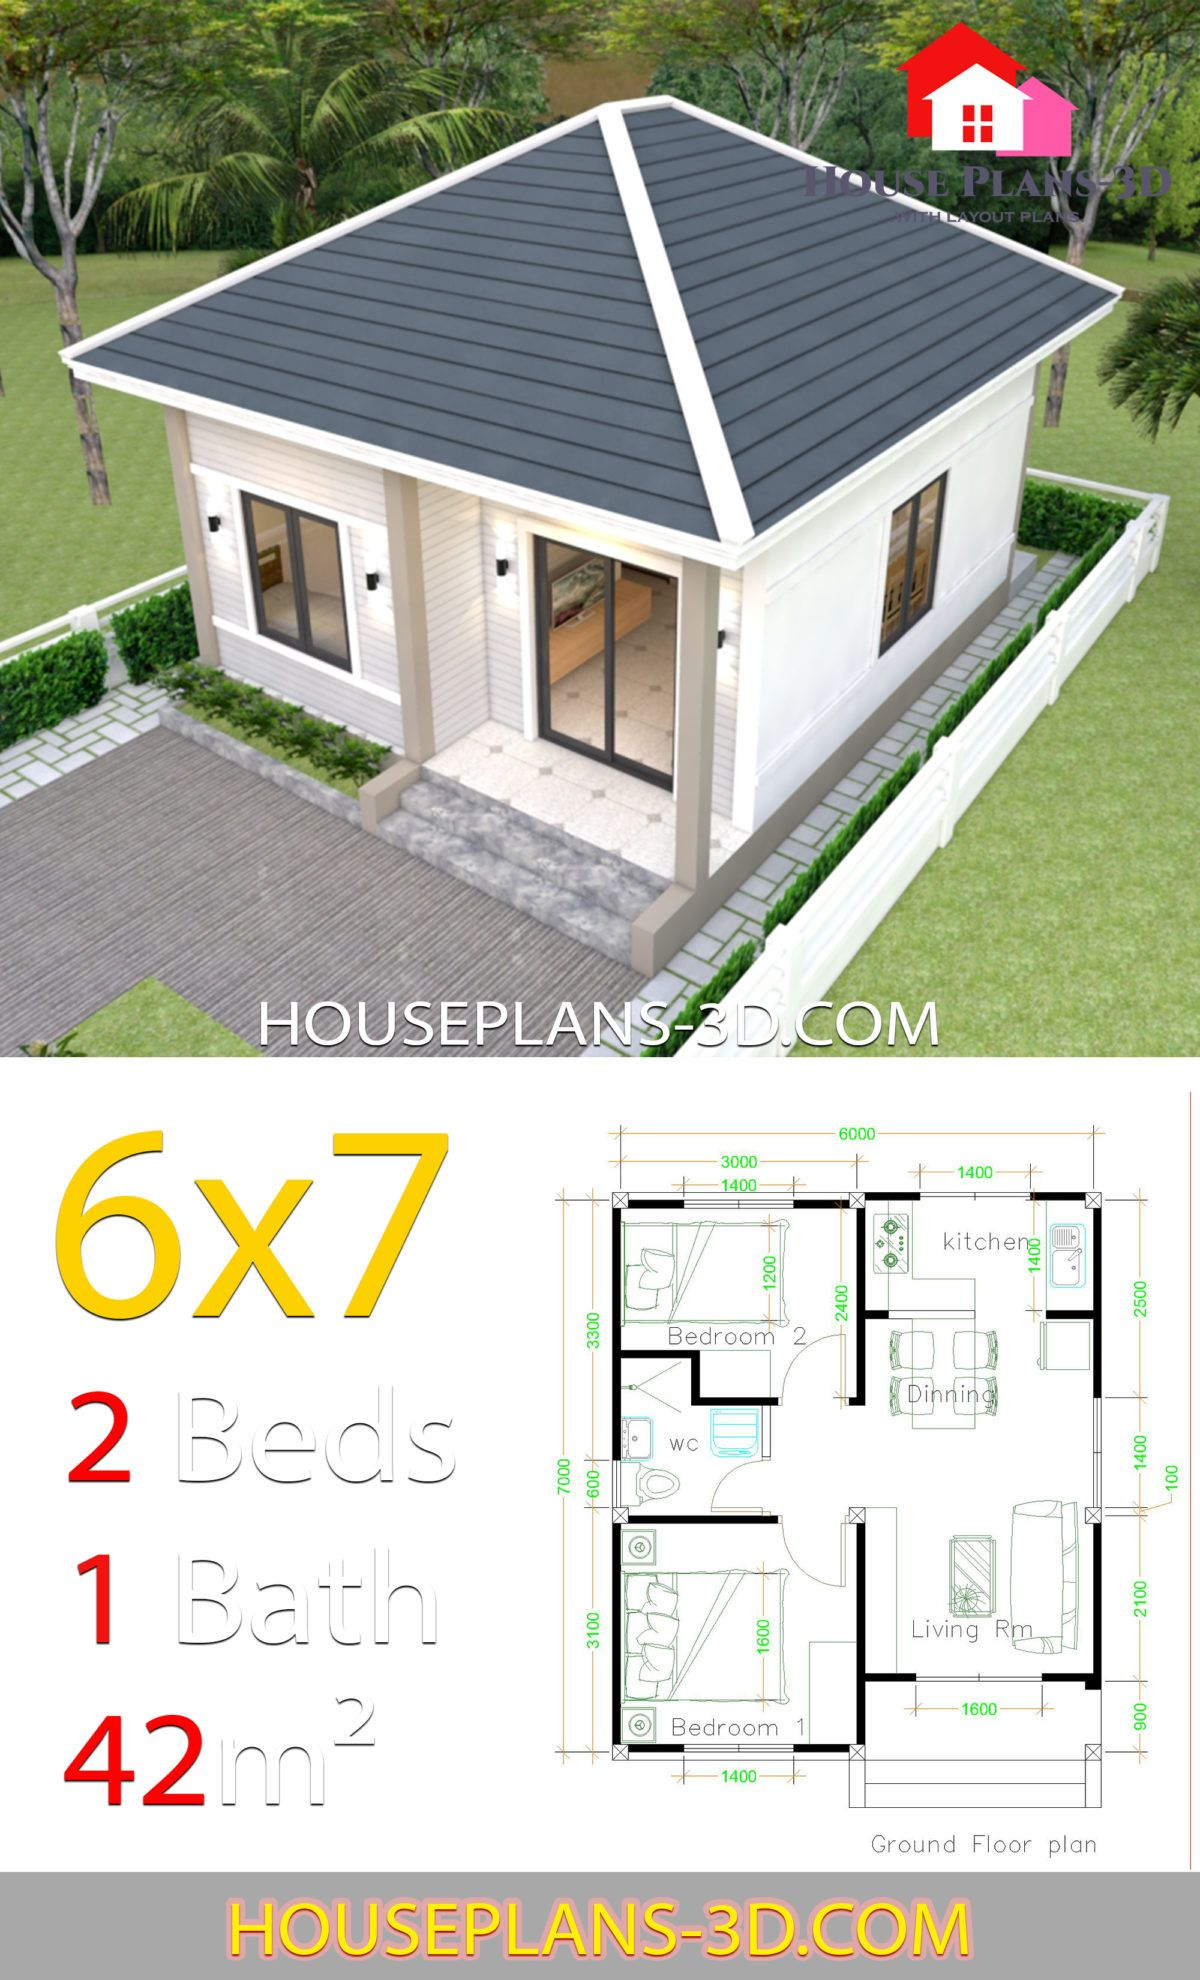 Simple House Plans 6x7 With 2 Bedrooms Hip Roof House Plans 3d Small House Design Plans House Design Pictures Little House Plans